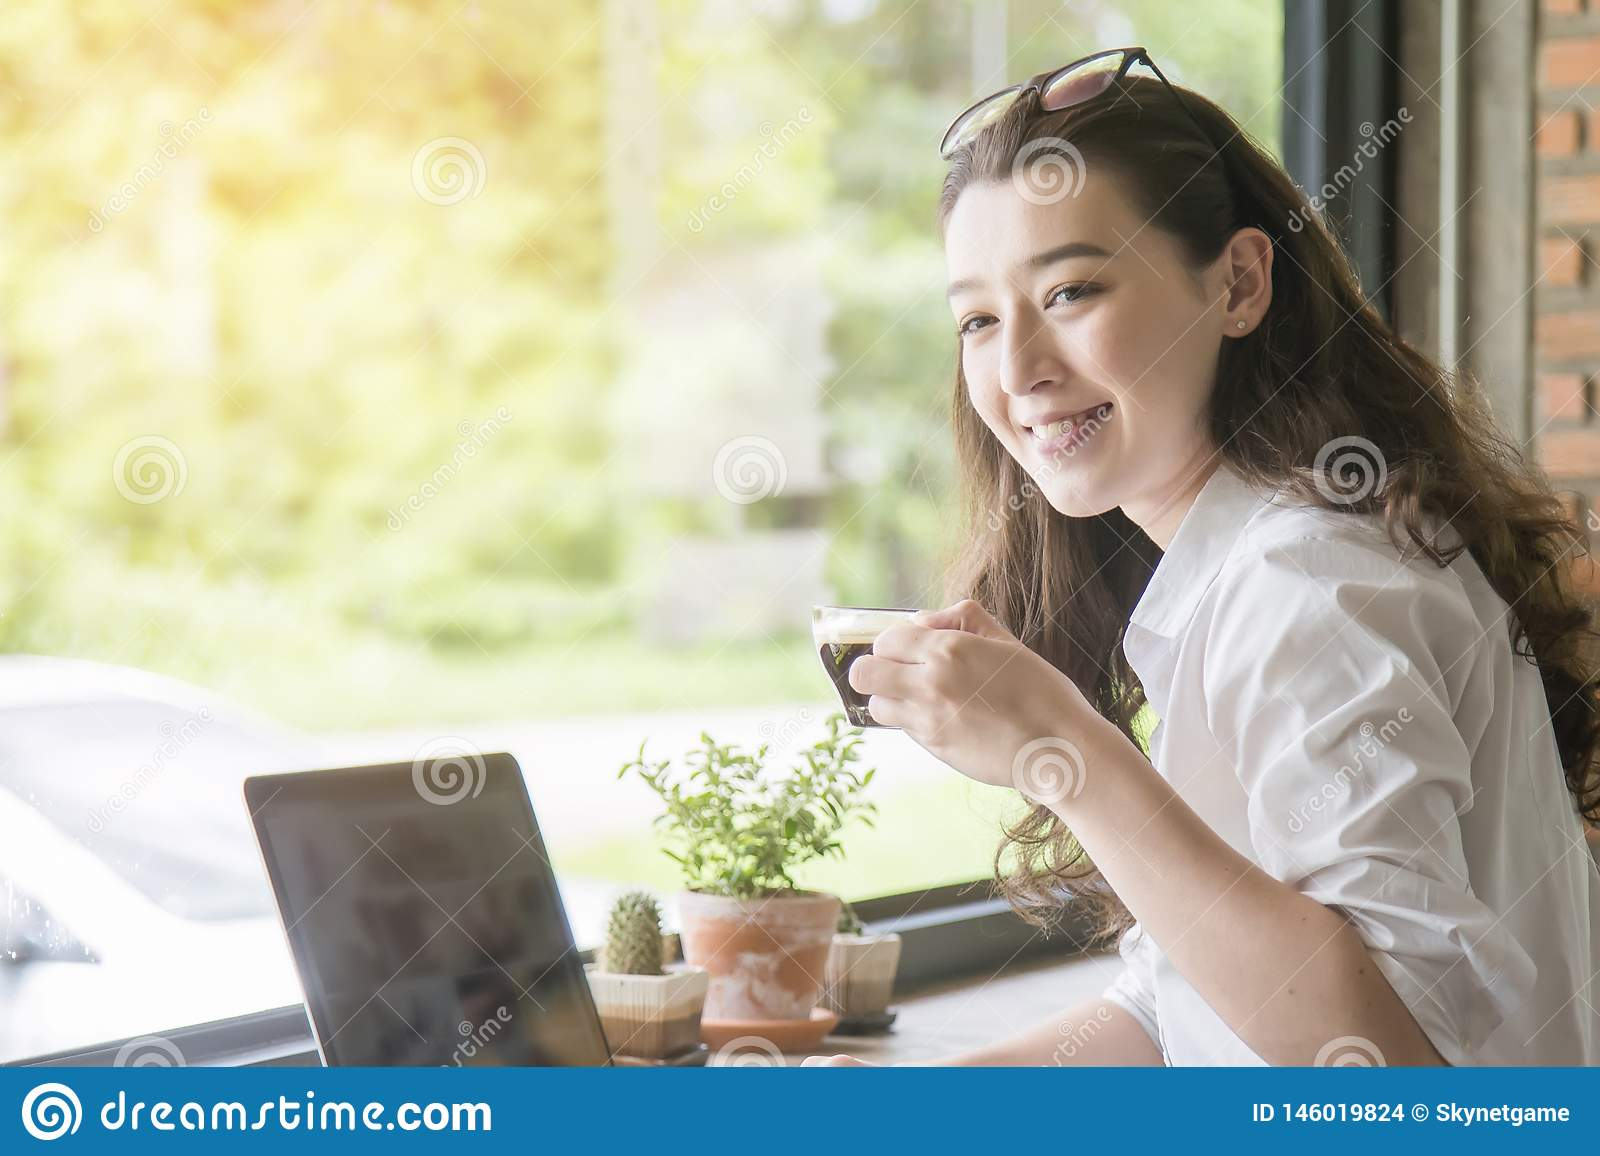 Young woman sitting in coffee shop at wooden table, drinking coffee and using smartphone.On table is laptop for internet shopping